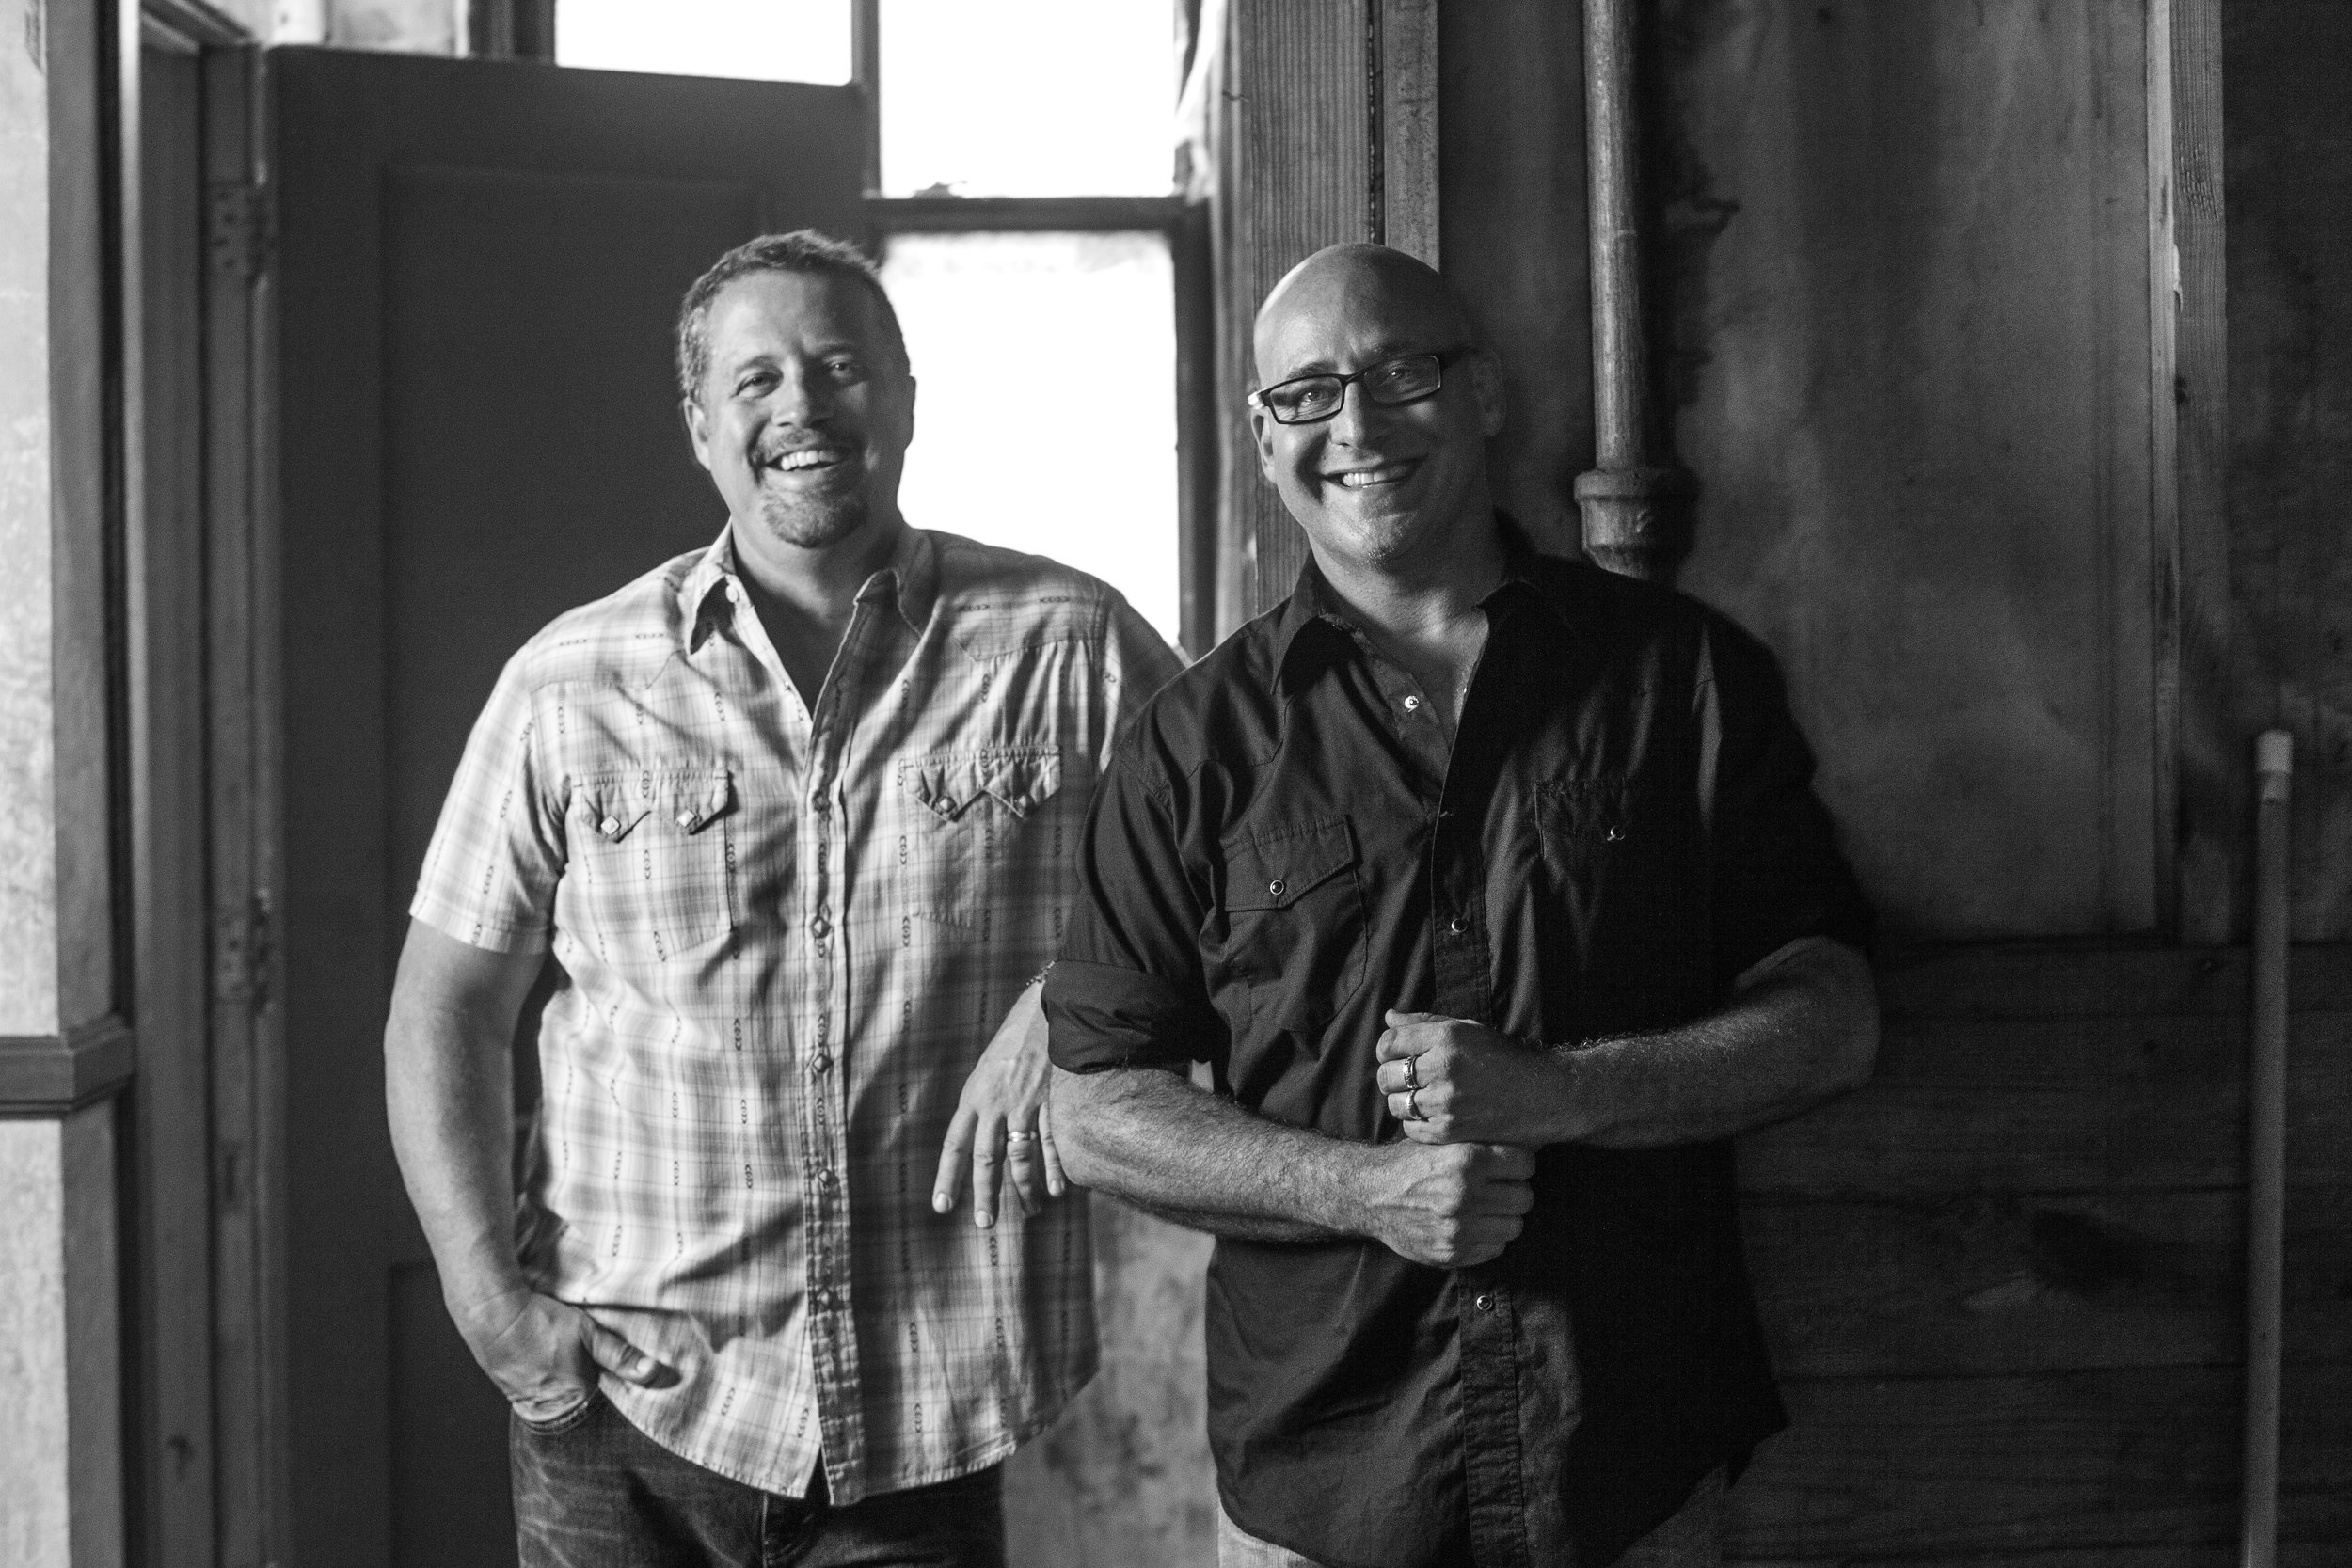 """Ken Block and Drew Copeland, best known as two of the five members of the platinum-selling southern rock band Sister Hazel, will bring their wildly successful tunes to select cities for intimate, """"miss it and miss out""""acoustic shows, reminiscent of their earlier performance days when they canvassed the club and coffee shop circuit as a duo from Gainesville, Florida.    While performing over 100 shows each year with the band, Block has long been praised by both media and fans alike for his powerful and emotion-evicting voice which is both unique and instantly recognizable thanks to a string of radio hits including """"All For You,"""" """"Change Your Mind,"""" """"Happy,"""" """"Champagne High,"""" and others. Over the last 15 years, he and the band have been prolific in the studio and at live shows.    Similarly, Copeland is also a celebrated songwriter and vocalist, in 2004 he released a solo album, """"No Regrets."""" An avid sports and music lover, Copeland has been honing his songwriting skills in Nashville, Tennessee over the last decade with some of country music's finest tunesmiths.    Sister Hazel is known for their personal approachability and fan-friendly events including being Co-Founders of THE ROCK BOAT, founders of the annual Hazelnut Hang, and for starting their own """"Lyrics for Life"""" charity and raising nearly 1 million dollars for childhood cancer research and family support programs. As University of Florida alumni, Copeland and Block also returned to their alma mater to be the first-ever celebrity hosts of the world's largest student run pep rally, Gator Growl.    Sister Hazel songs have appeared in many motion picture soundtracks over the last decade including 10 Things I Hate About You, Major League: Back to the Minors, The Wedding Planner, Clay Pigeons, American Wedding, and Bedazzled.    As two of our generations' most engaging and prolific songwriters, """"The Ken and Drew Show"""" will take fans through intimate acoustic performances of Sister Hazel favorites, a few """"B sides"""" a"""